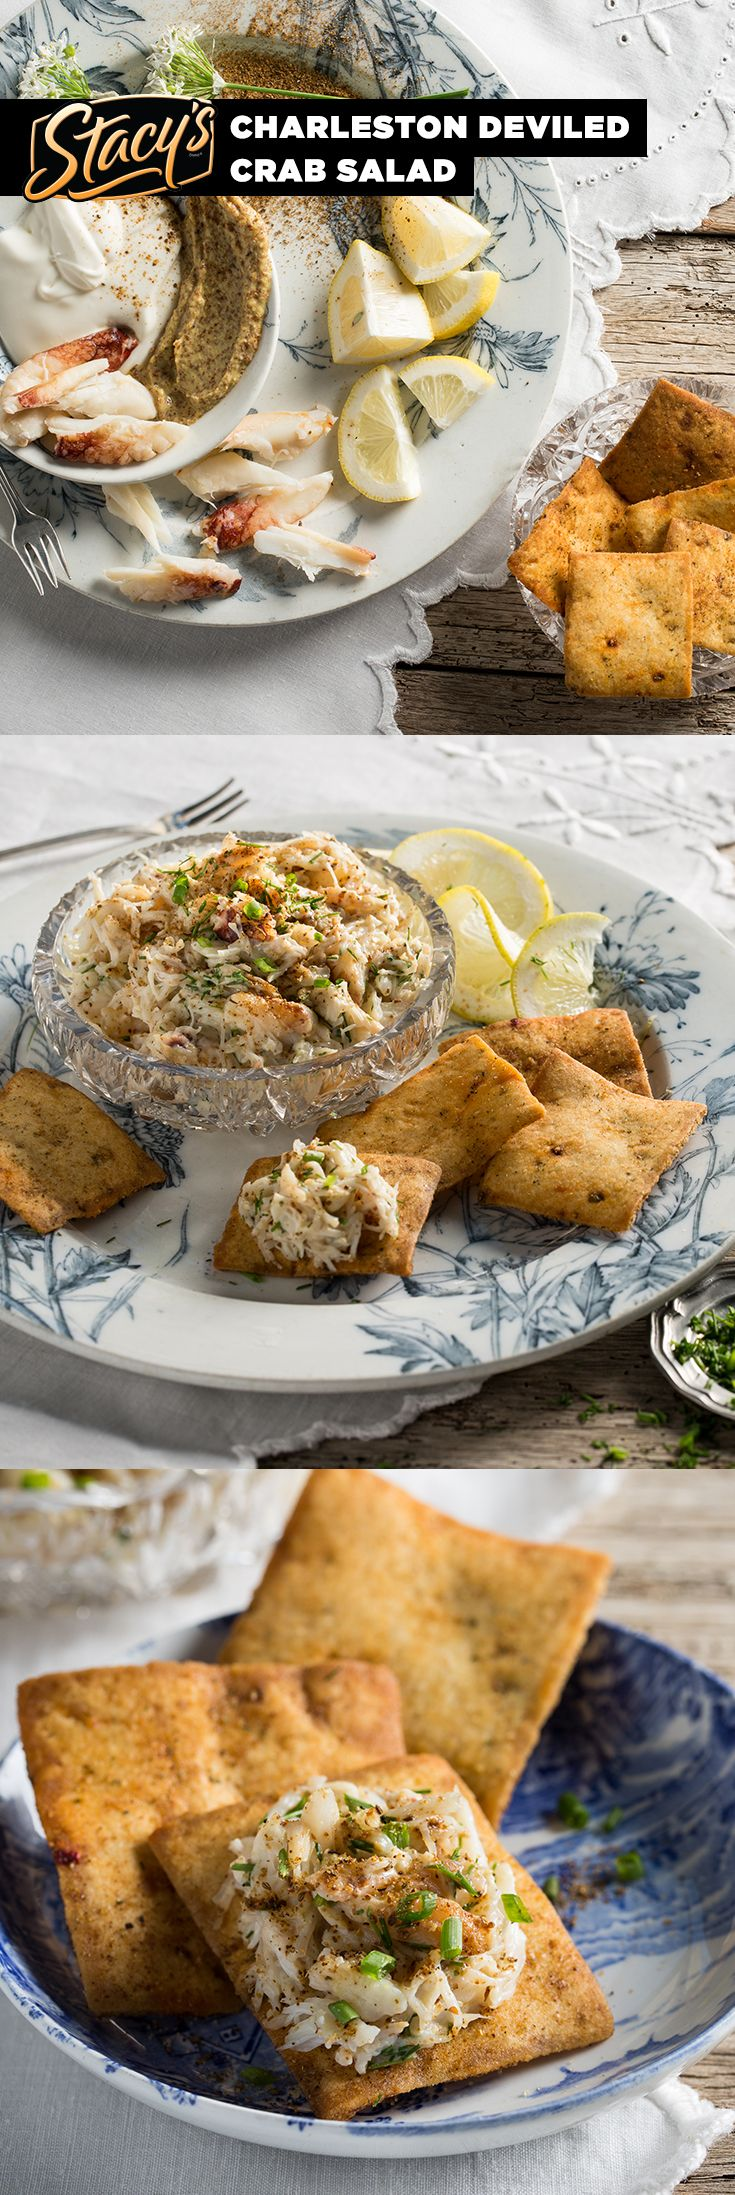 Charleston Deviled Crab Salad from James Beard Award-winning chef Mike Lata. Classic, southern, seaside. Charleston inspired this classic regional recipe.